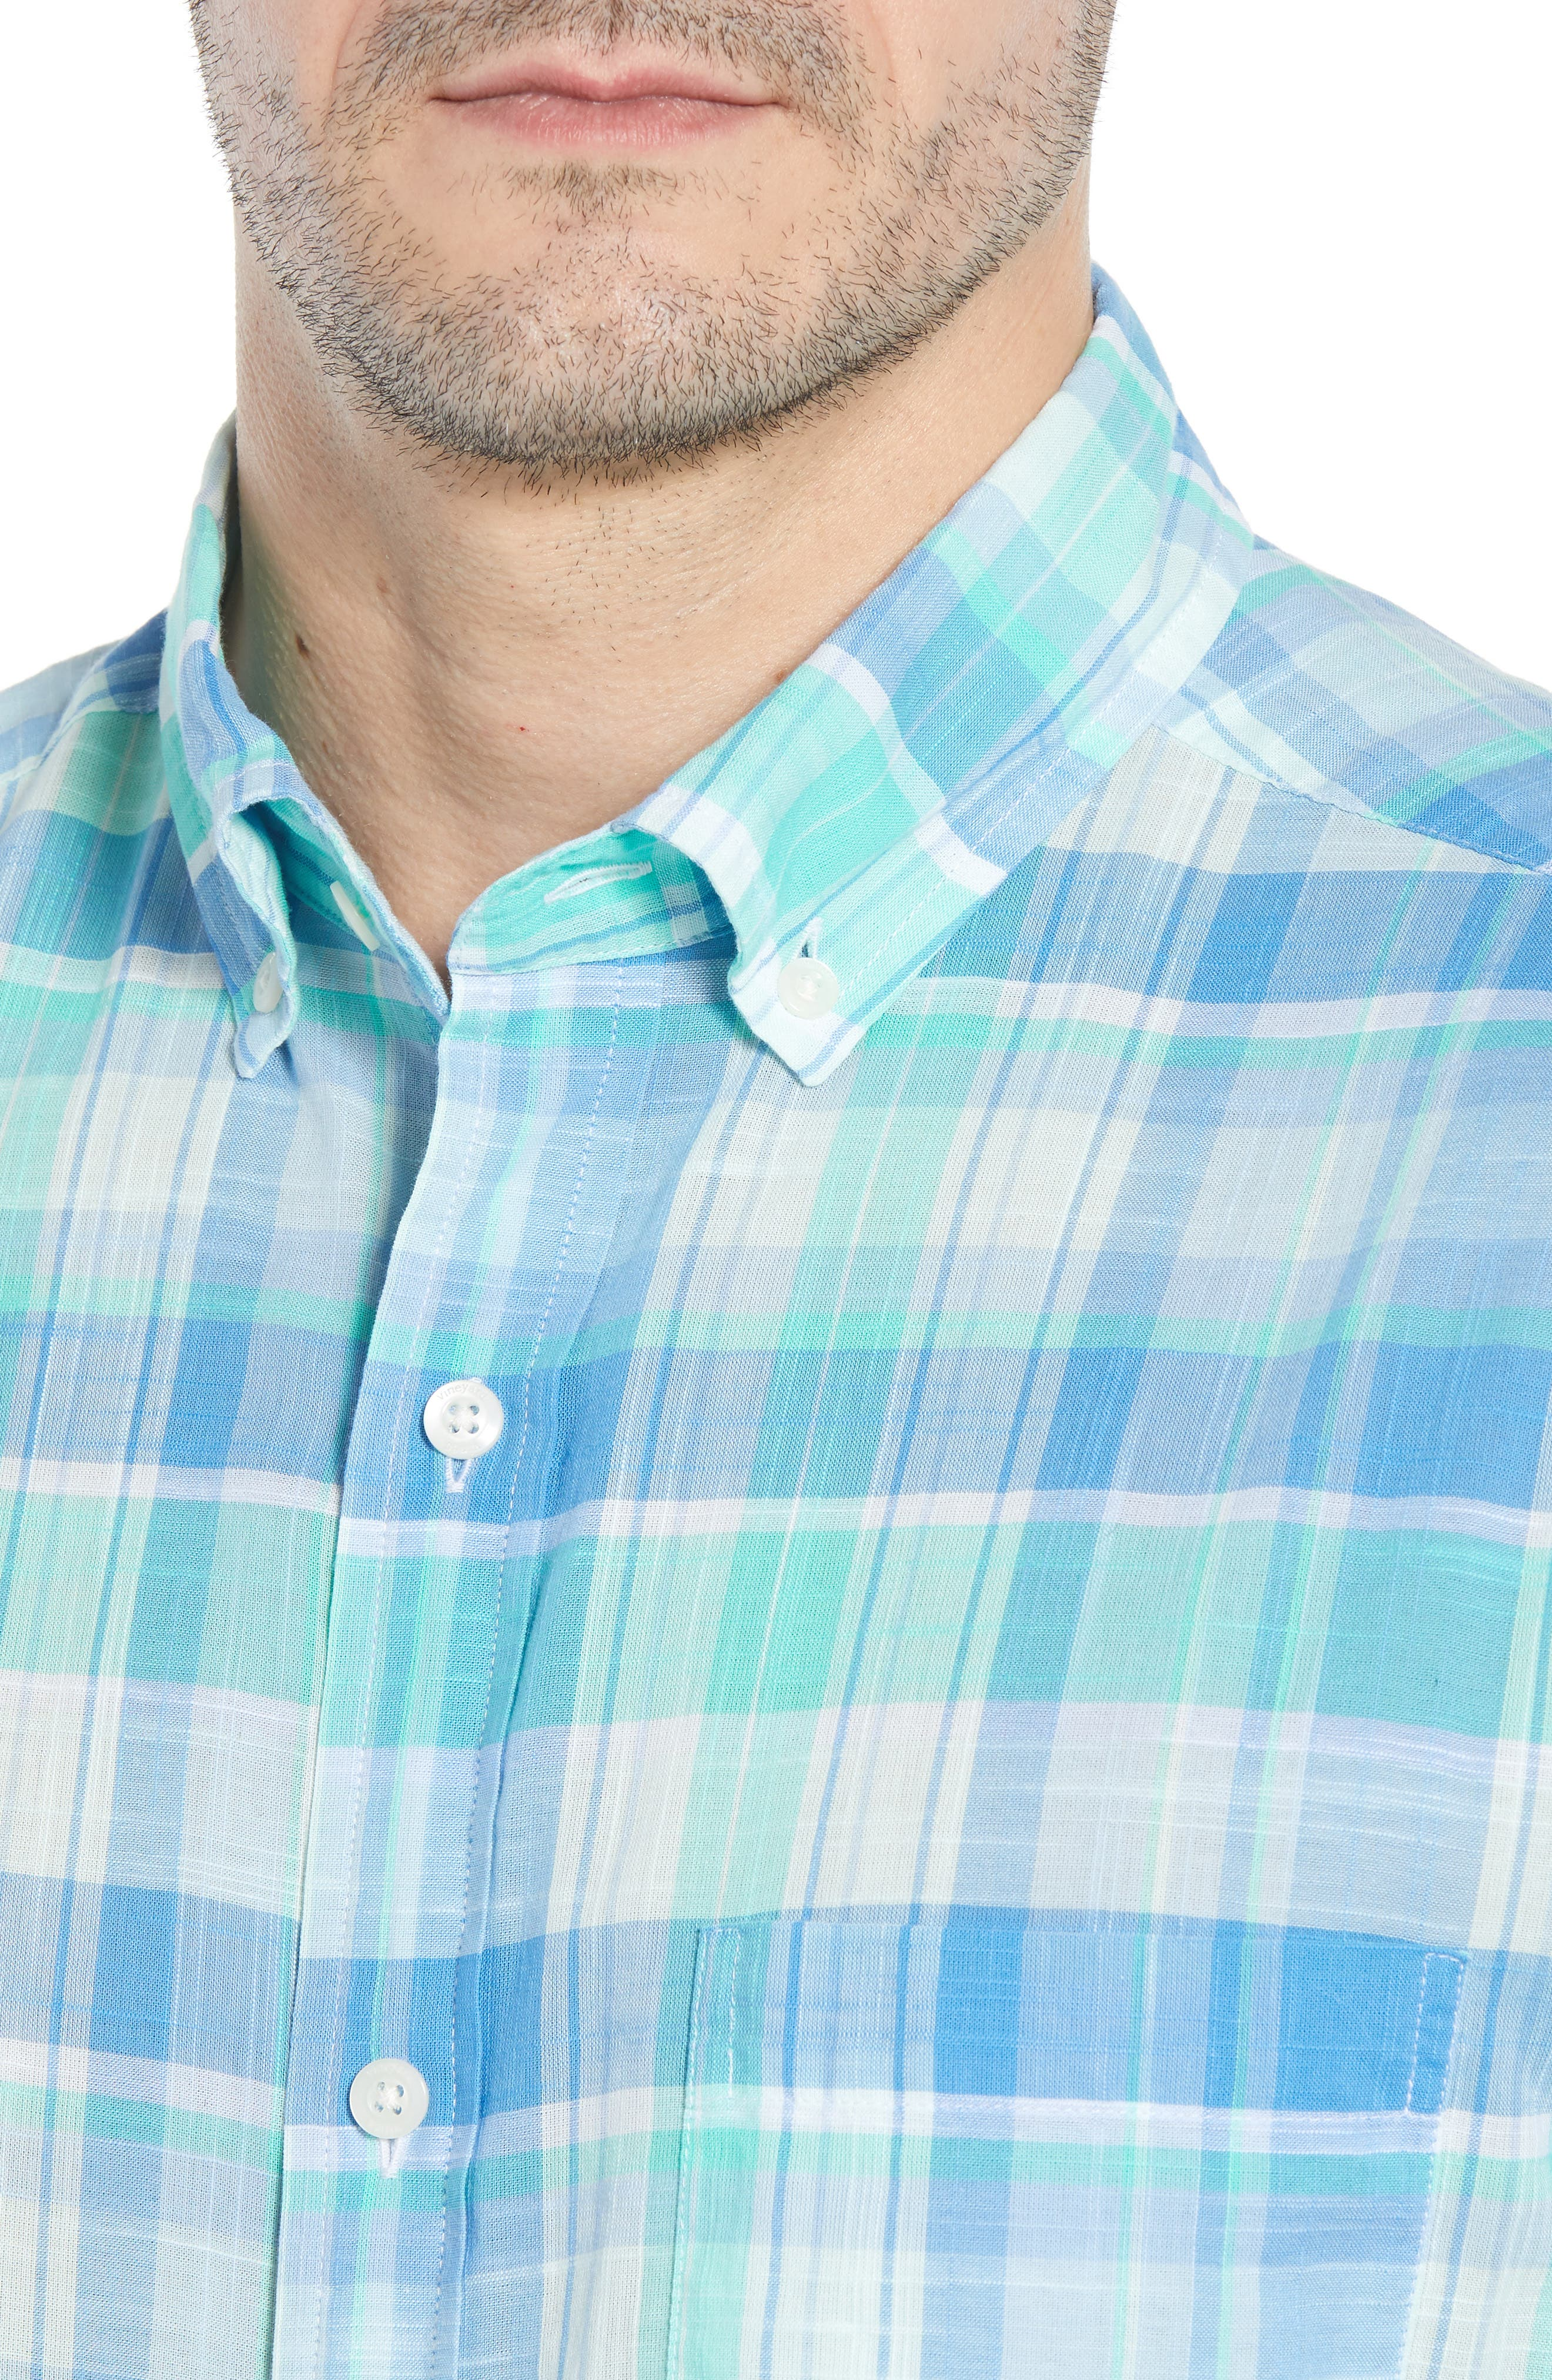 Homer Pond Murray Classic Fit Plaid Sport Shirt,                             Alternate thumbnail 2, color,                             Antigua Green